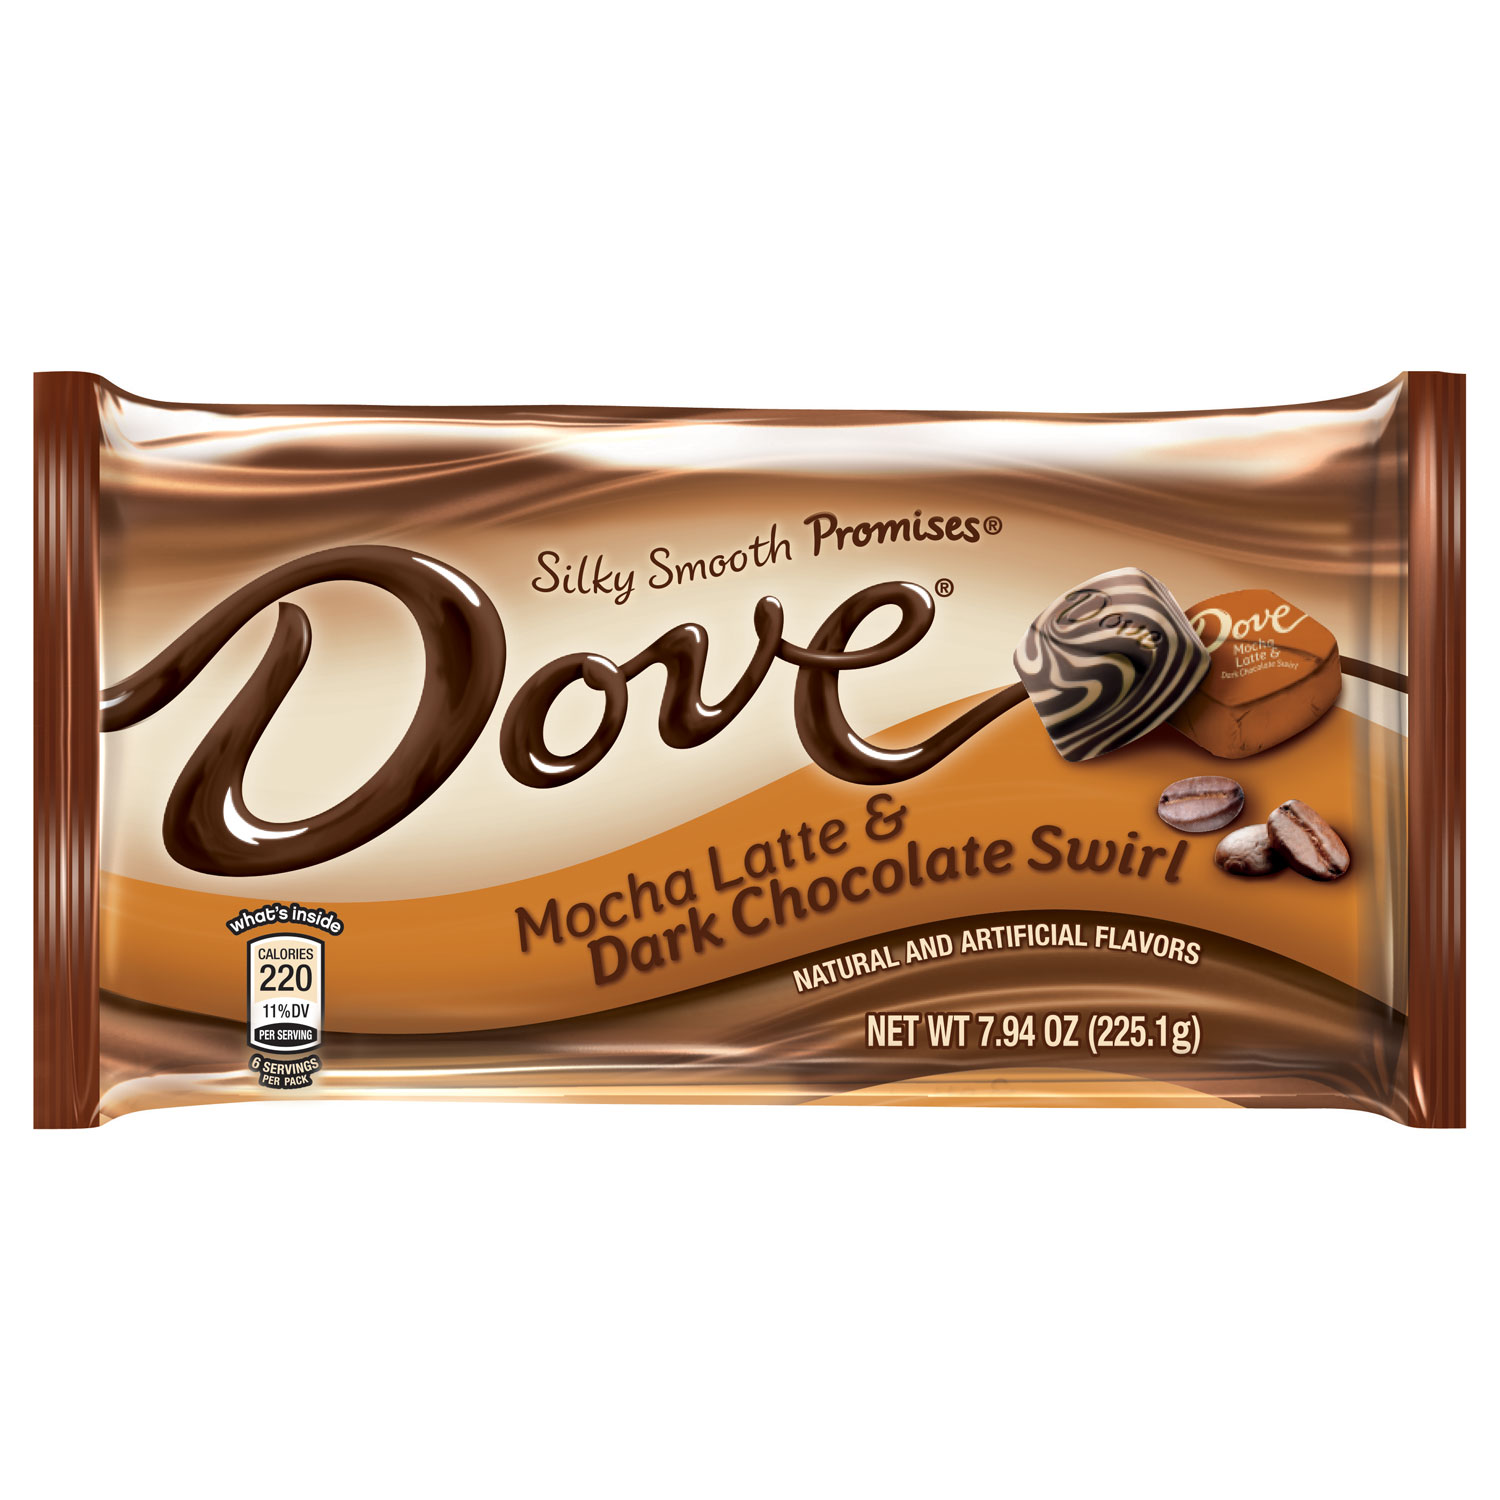 DOVE PROMISES Mocha Latte and Dark Chocolate Swirl Candy Bag, 7.94 oz